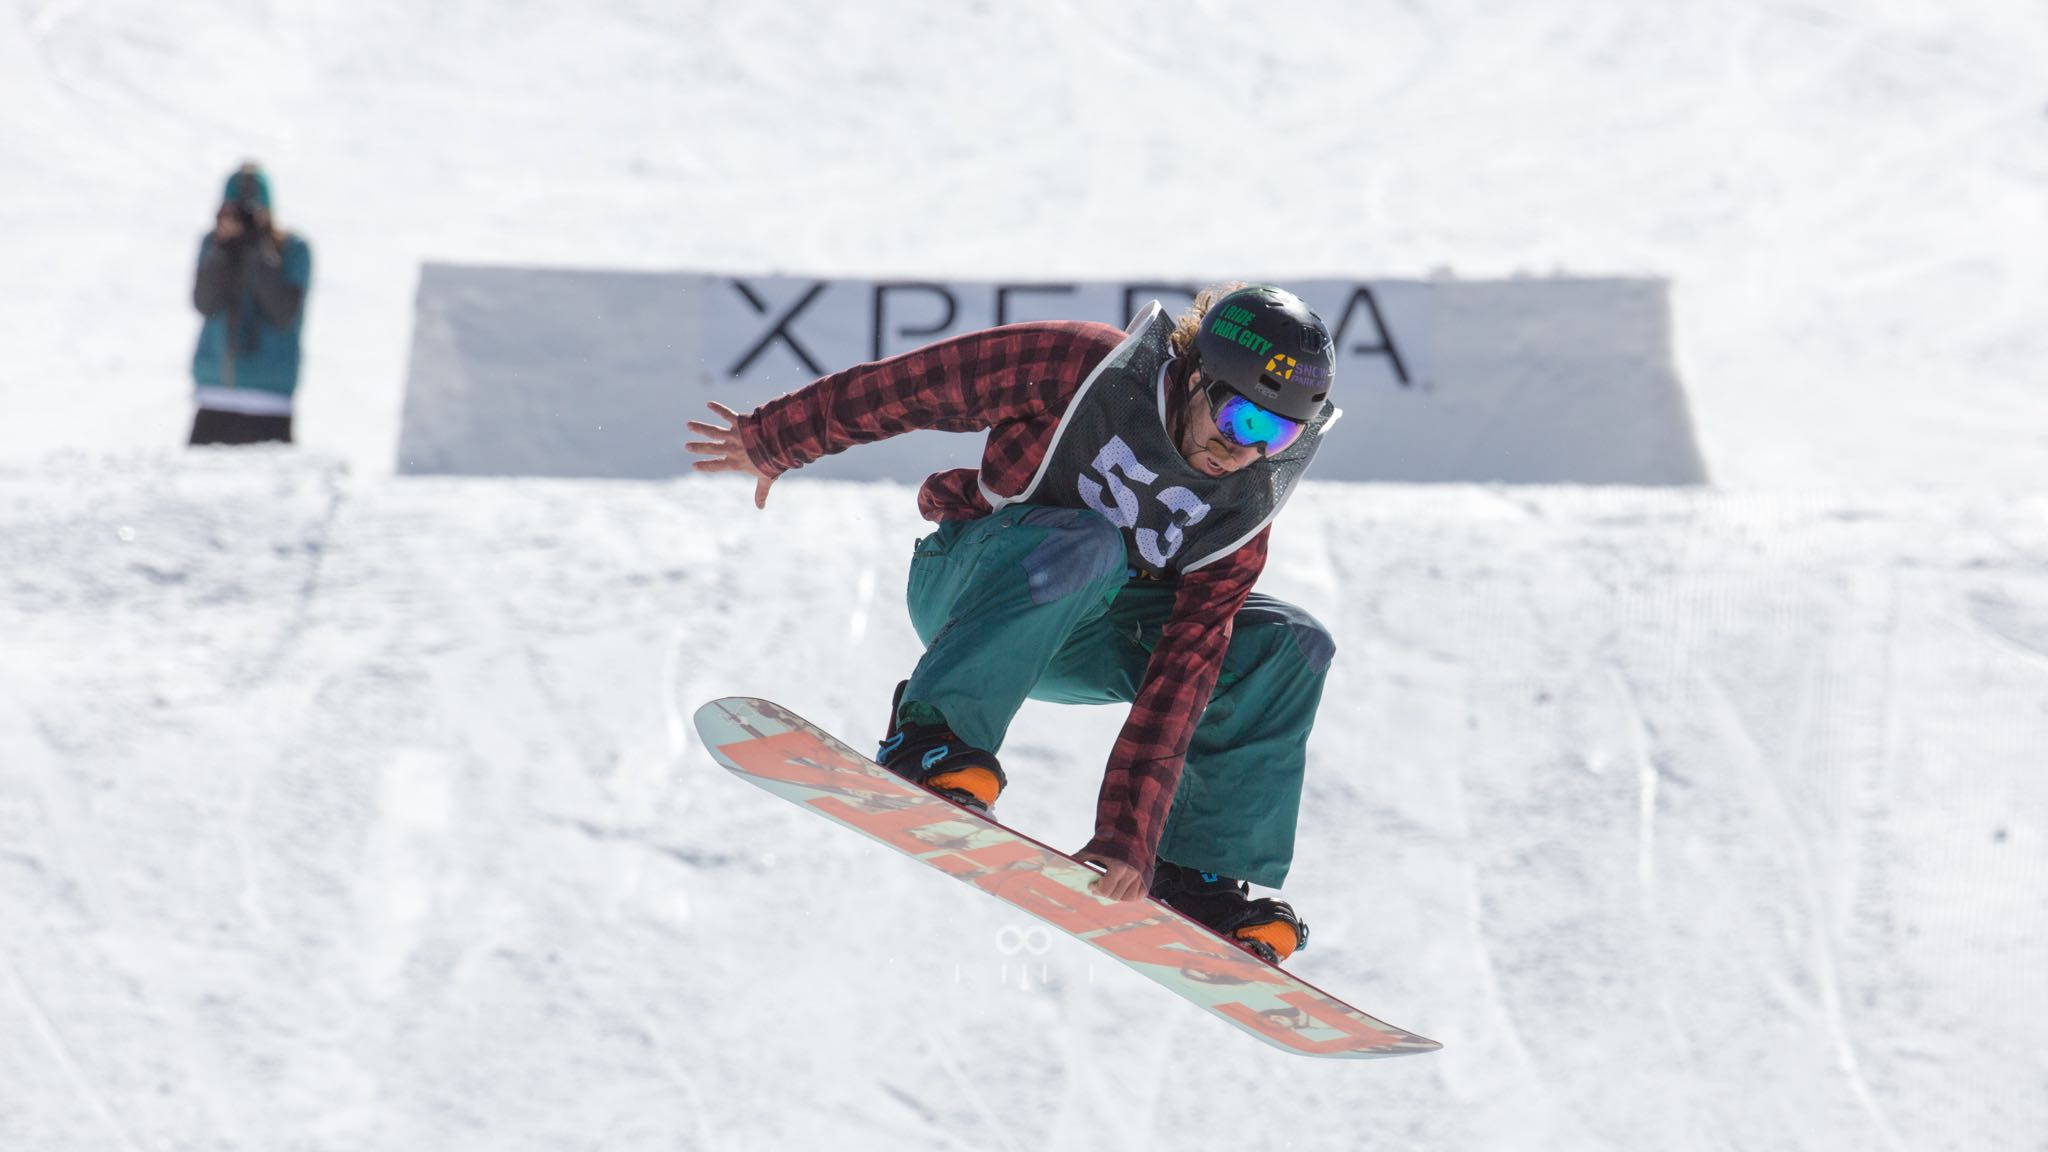 Andrew Le Roux Snowboarding his way to victory in the Pro Mens division at Xperia Winter Whip 2016